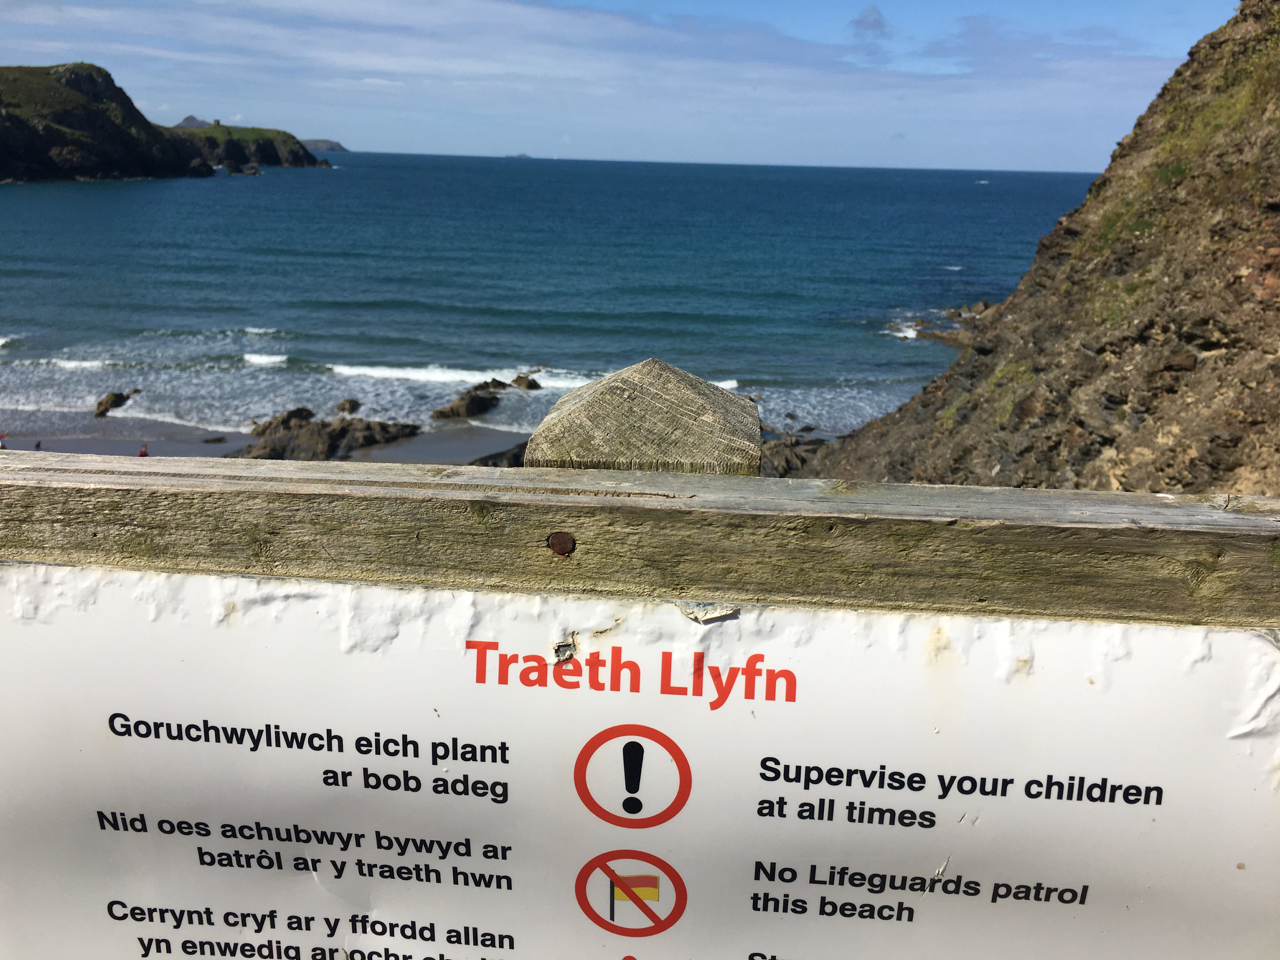 Photo of the sign welcoming people to Traeth Llyfn beach